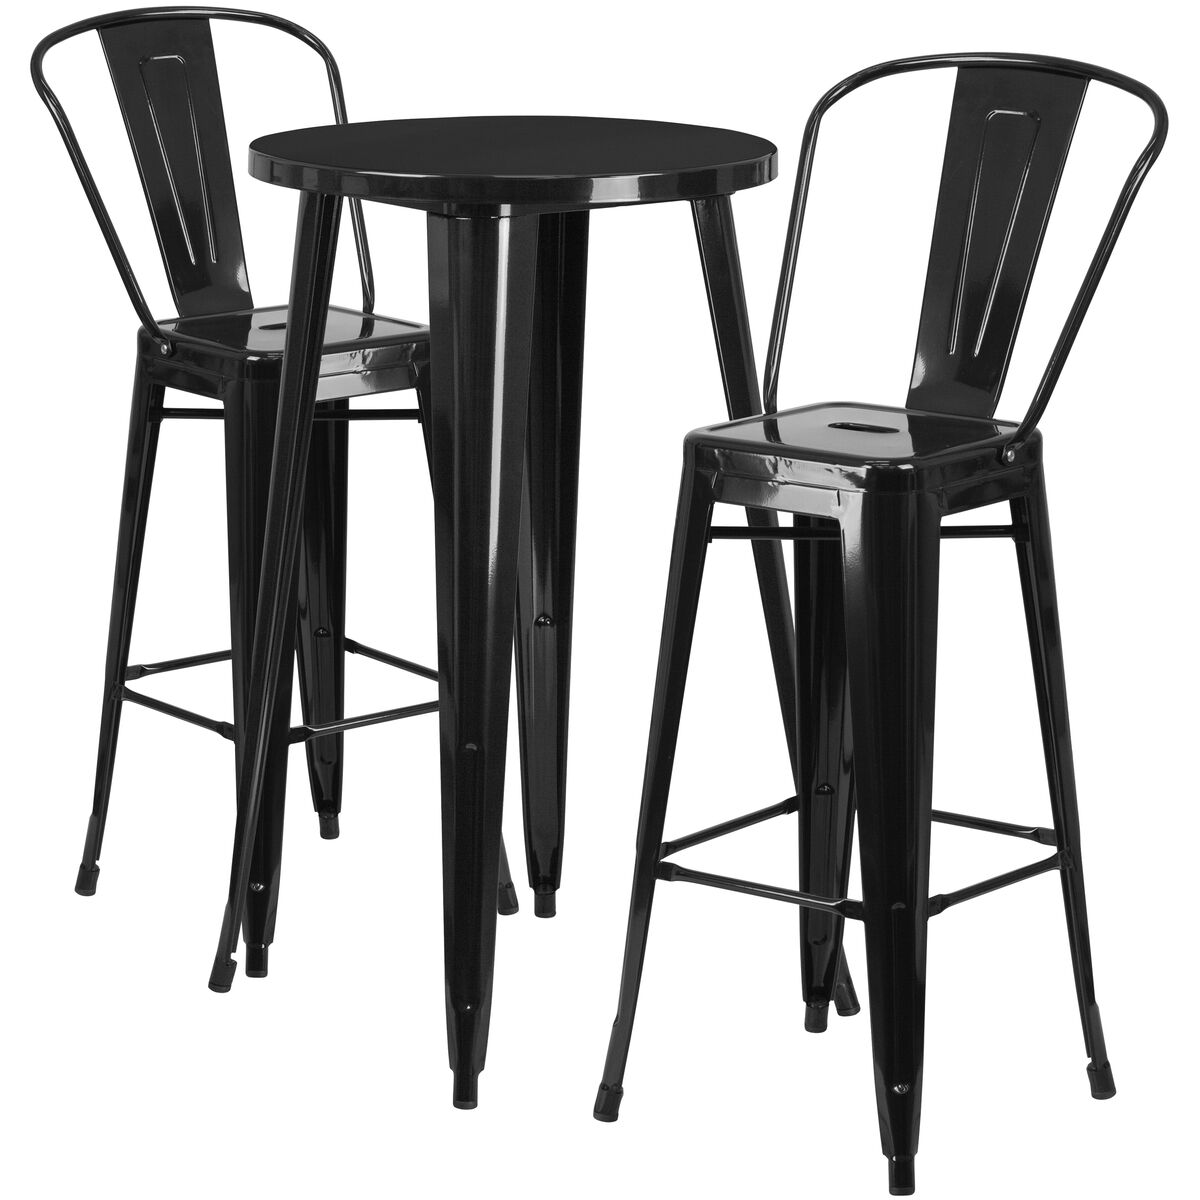 RD Black Metal Bar Set CHBHCAFEBKGG Bizchaircom - Outdoor cafe style table and chairs